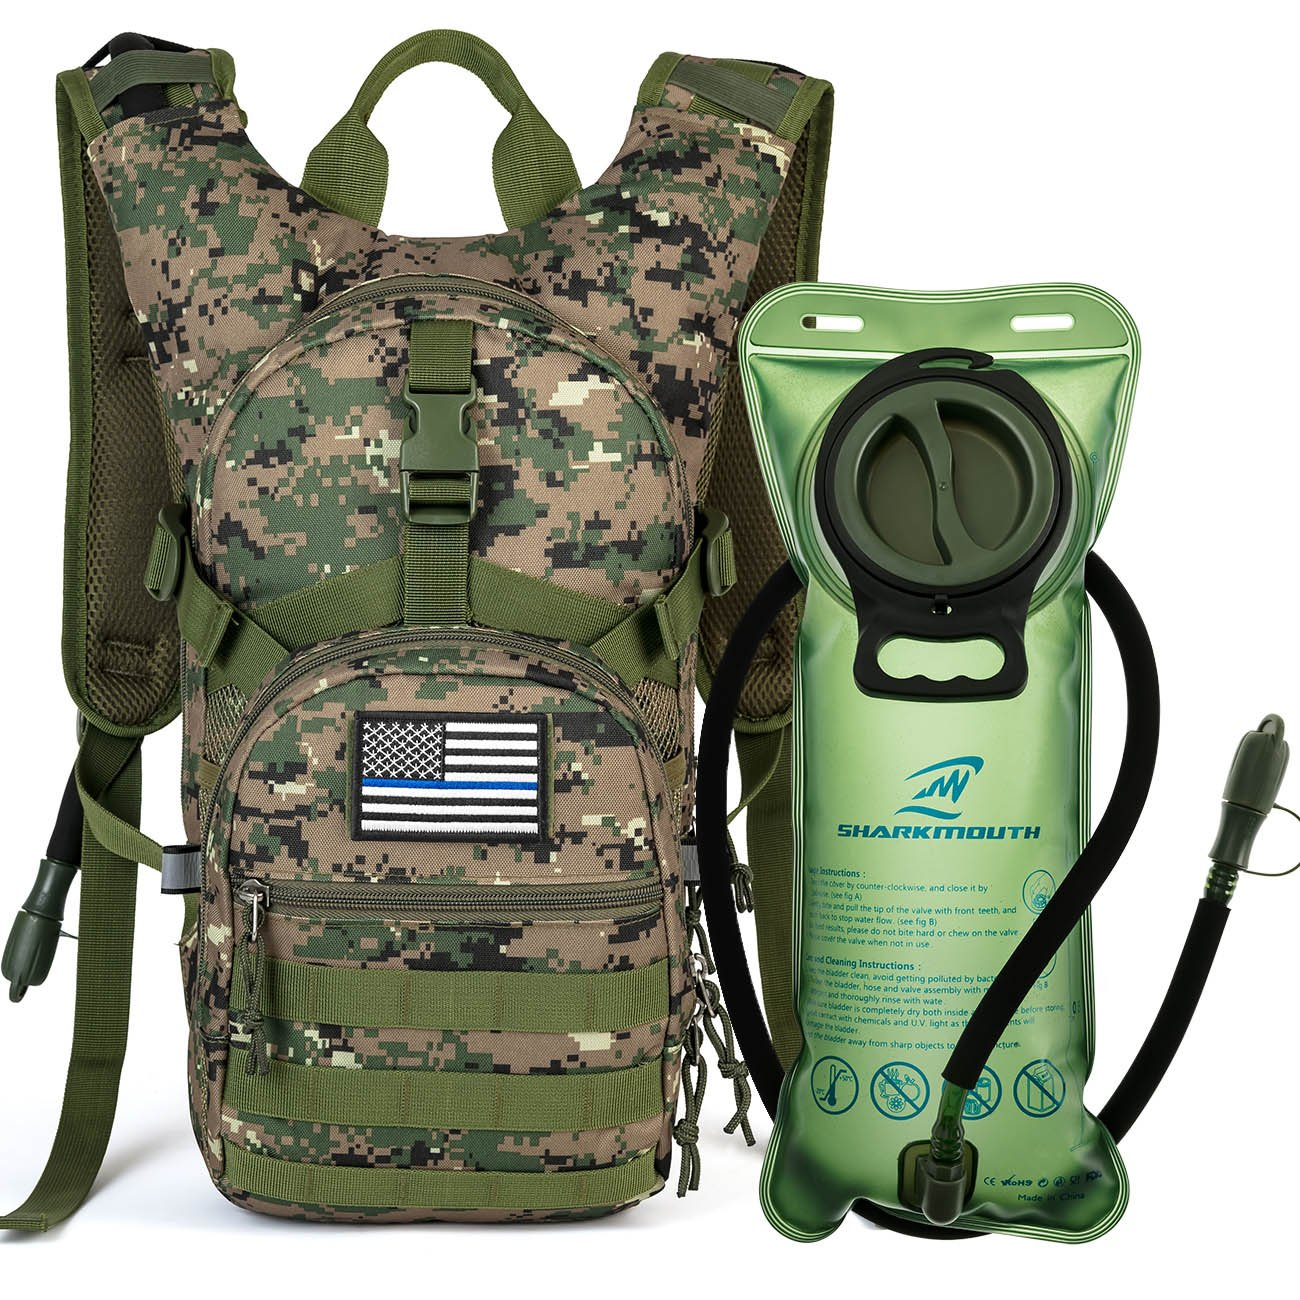 SHARKMOUTH Tactical MOLLE Hydration Pack Backpack 900D with 2L Leak-Proof Water Bladder, Keep Liquids Cool for Up to 4 Hours, Outdoor Daypack for Cycling, Hiking, Running, USA Flag Patch, ACUGreen by SHARKMOUTH